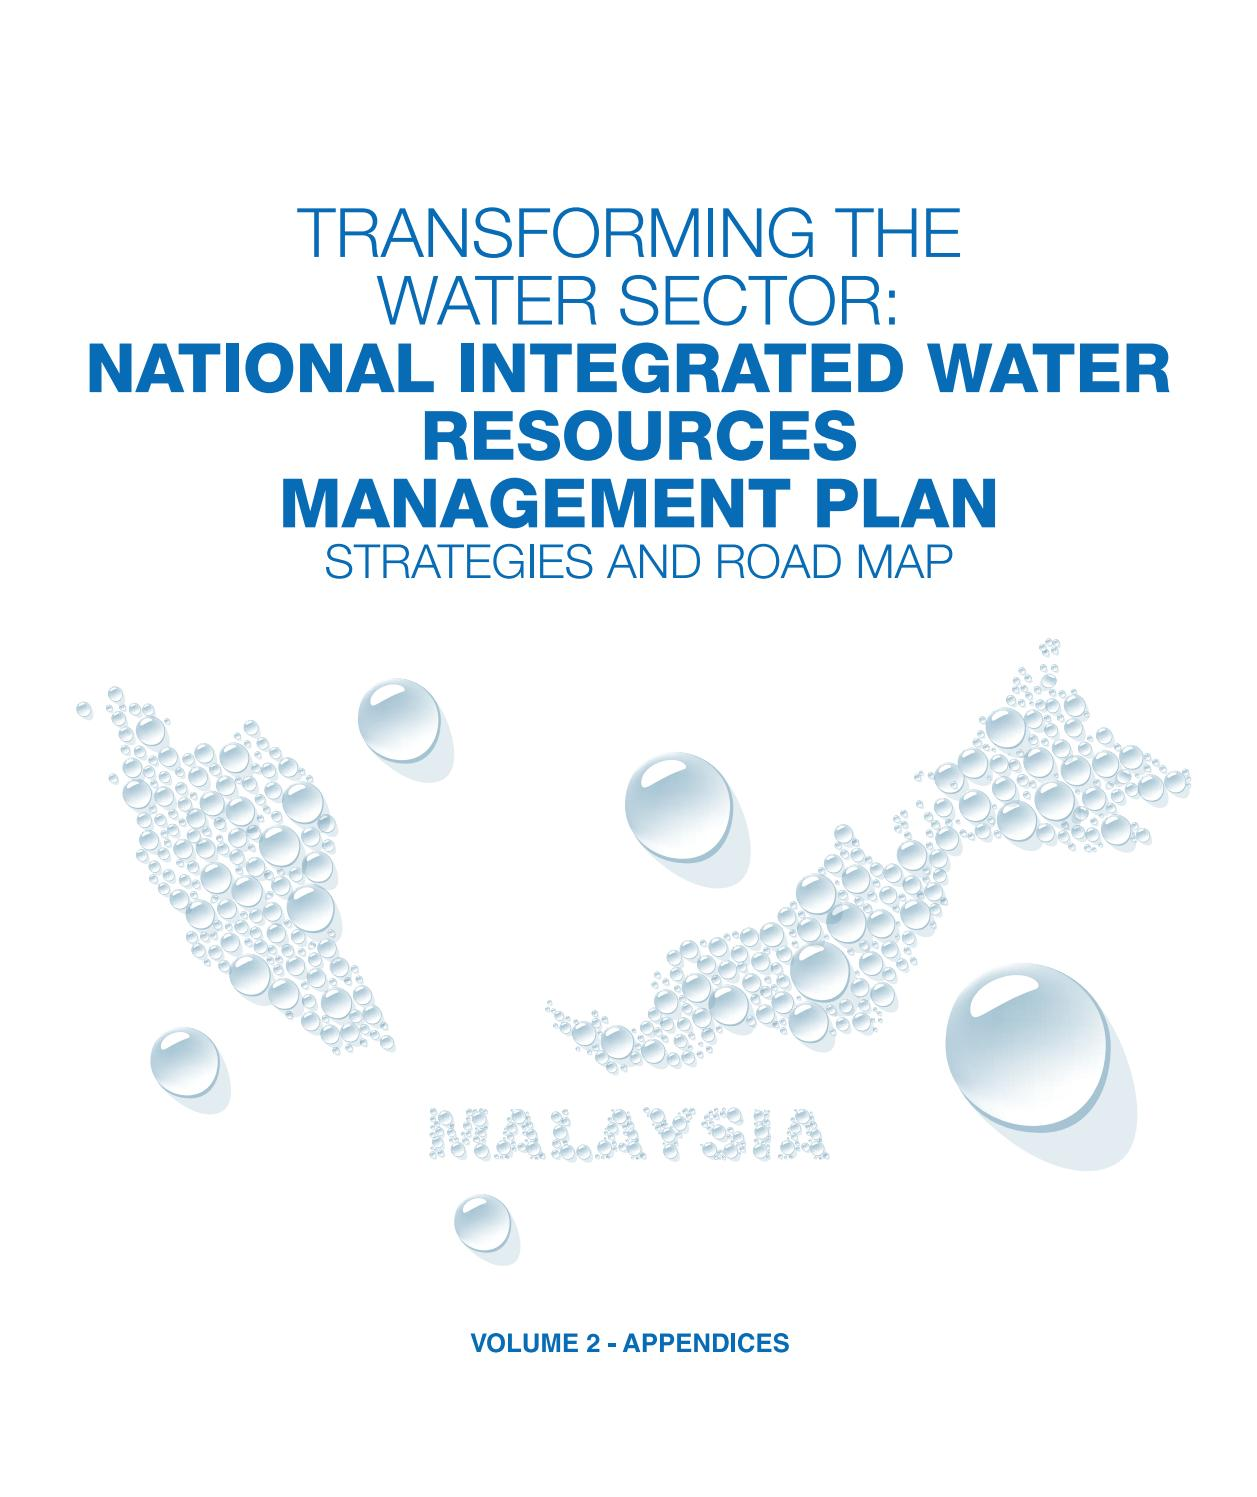 National Integrated Water Resources Management Plan